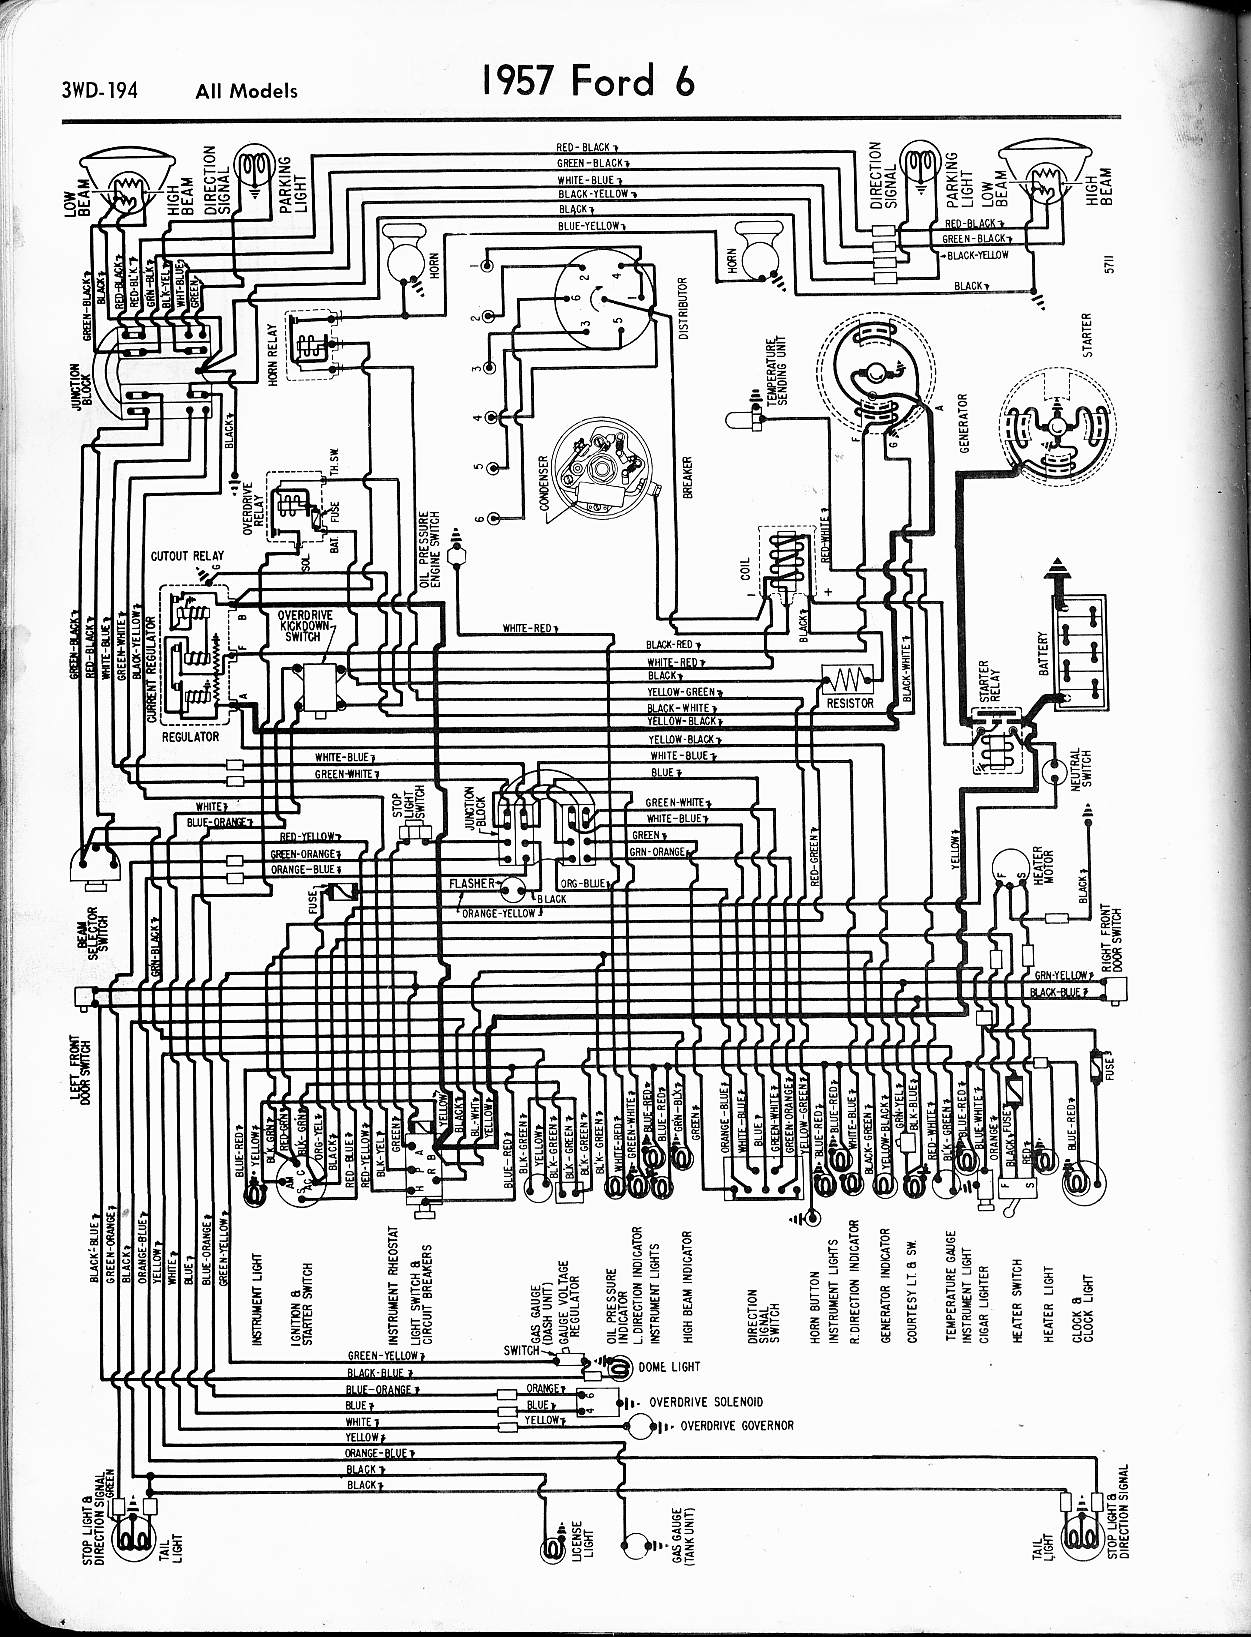 MWire5765 194 1955 ford wiring diagram 2014 dodge 2500 wiring diagram \u2022 free 1965 ford thunderbird wiring diagram at crackthecode.co